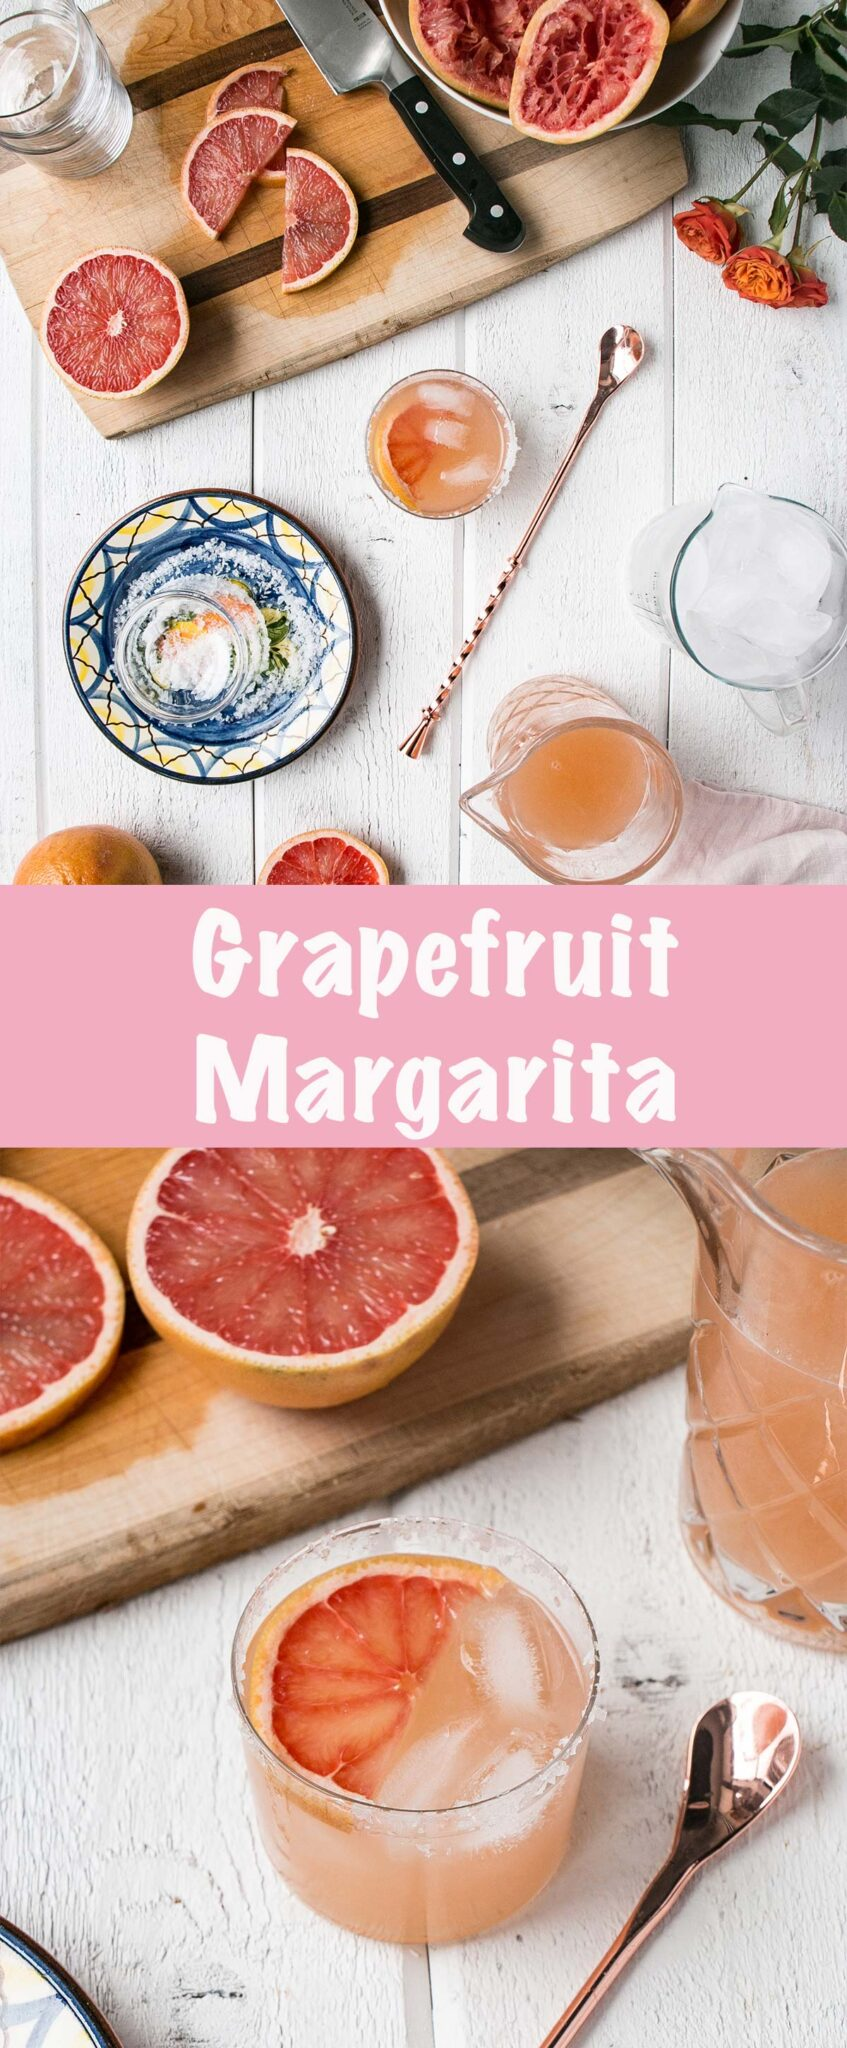 This Grapefruit Margarita is a refreshing, Winter take on a classic Margarita. #margarita #cocktail #tequila #margarita